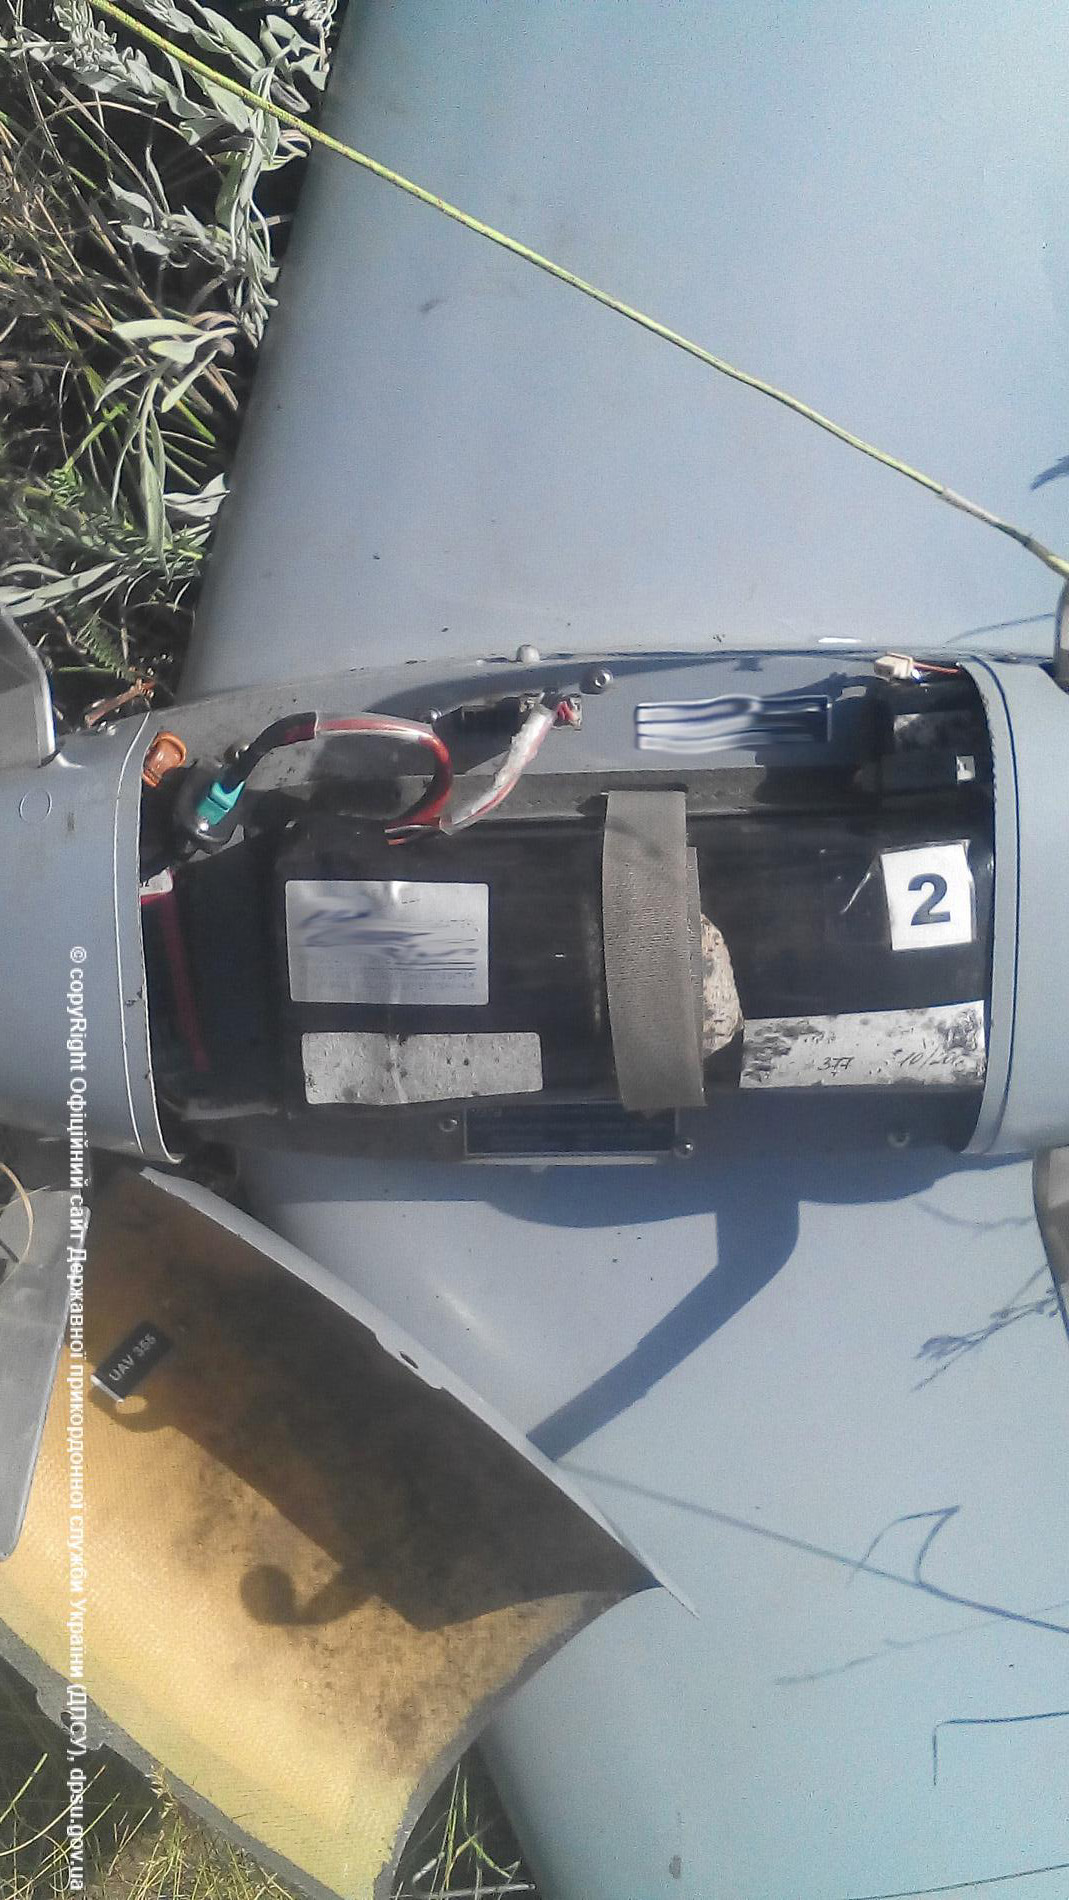 Some information removed from the photo of Zastava Russian drone